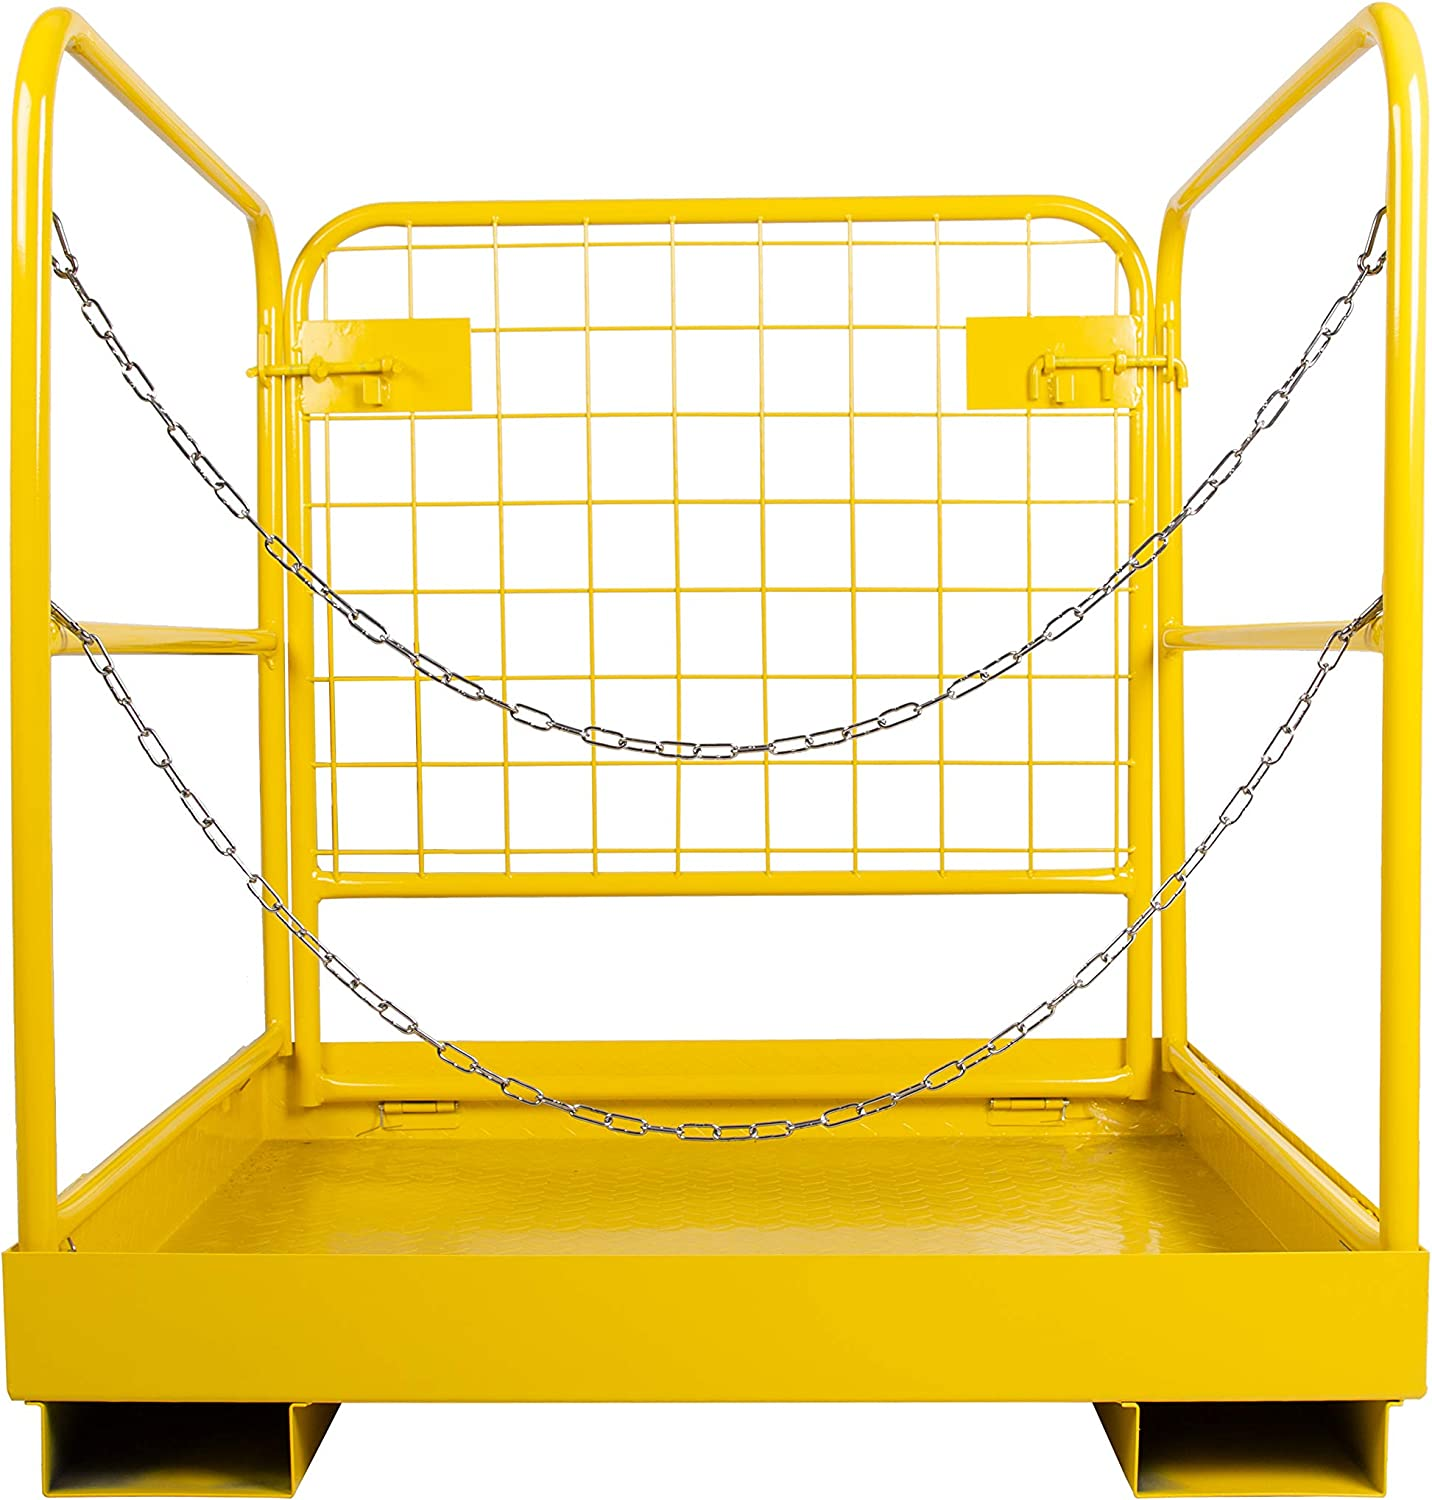 ECOTRIC 36x36 Forklift Cage Work Platform Safety Cage/ Collapsible Lift Basket Aerial Rails Heavy Duty Steel Construction/ Fold Down Design